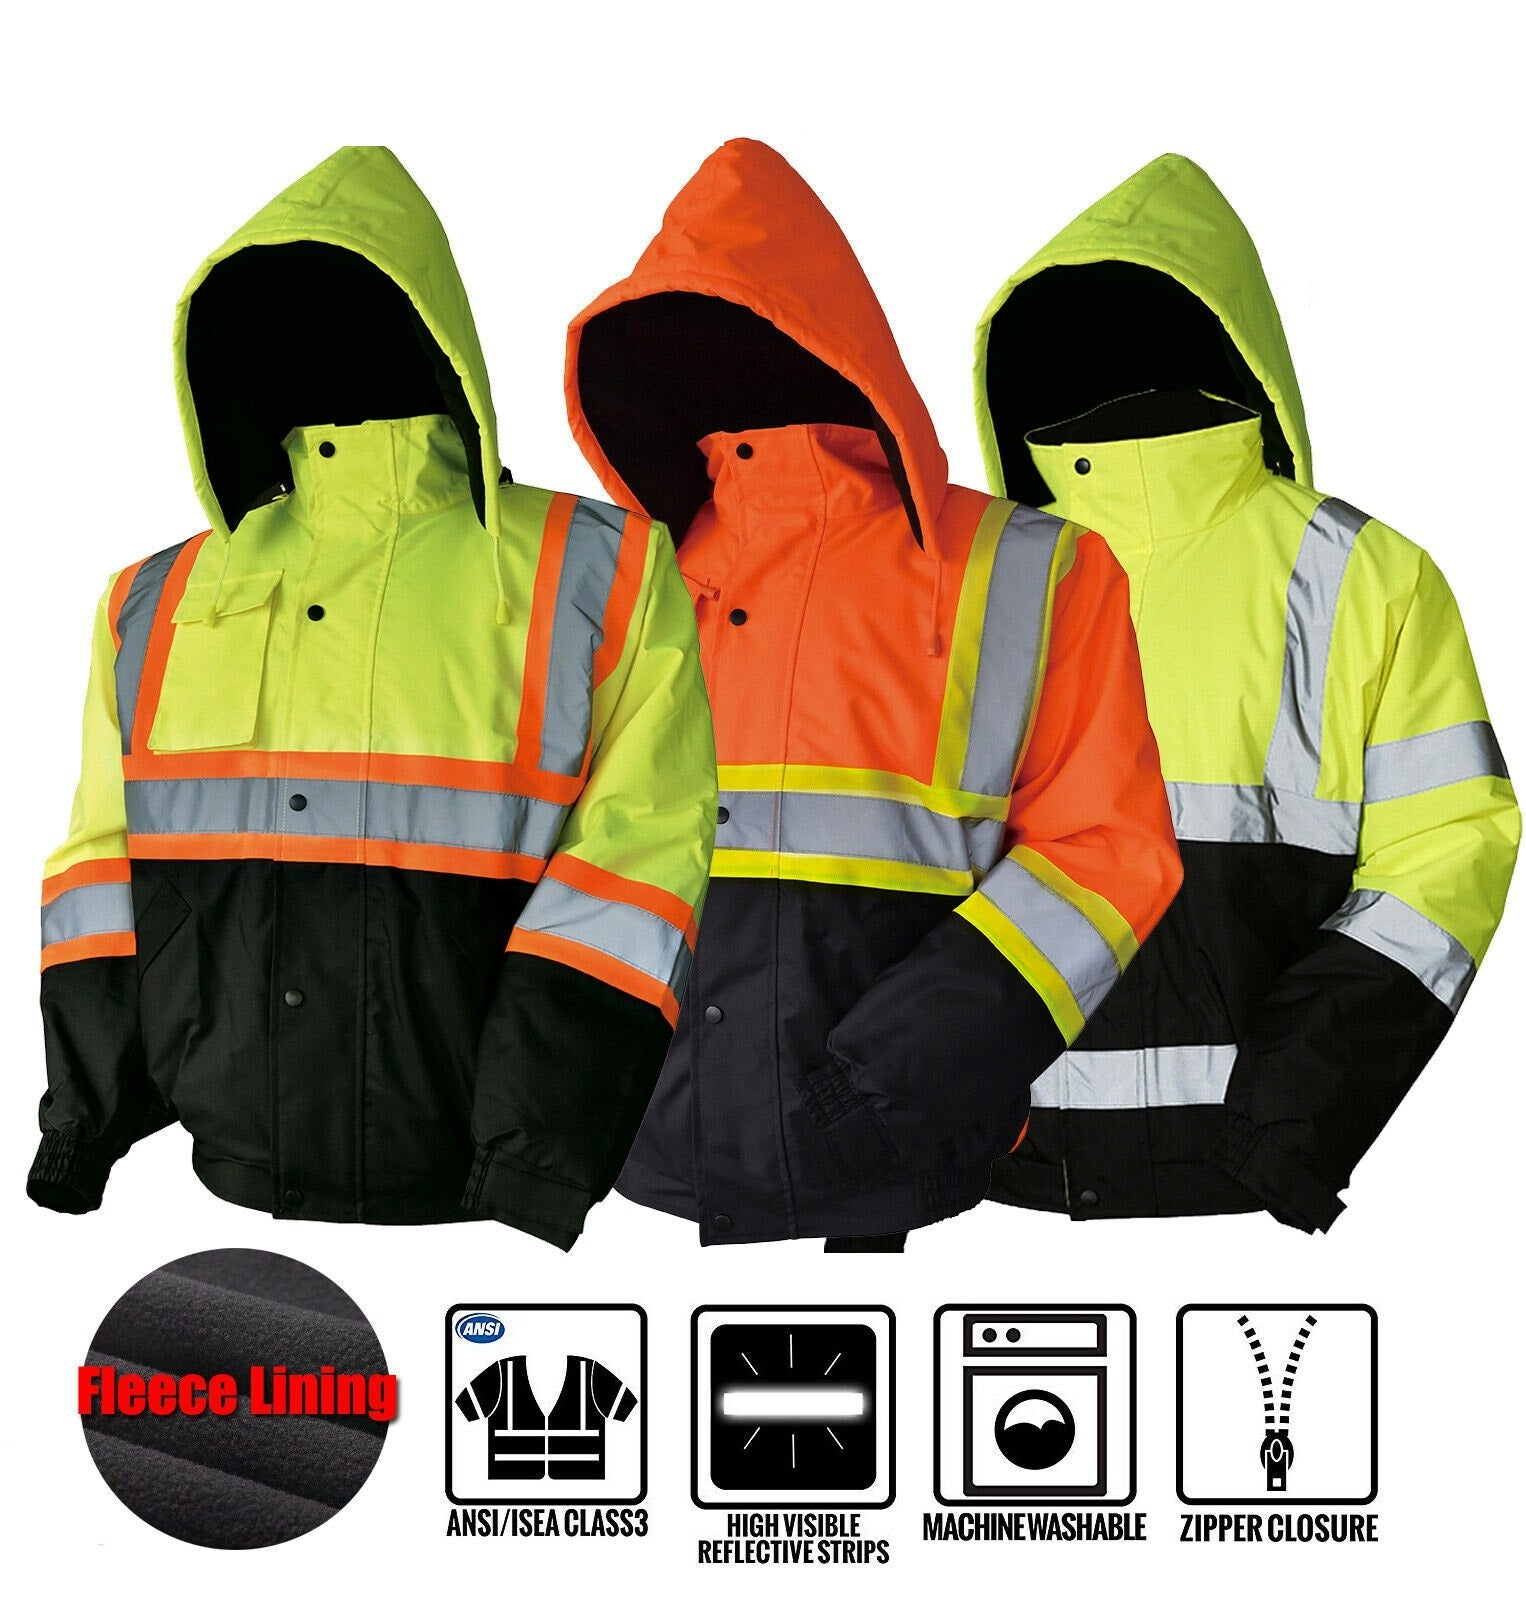 Wholesale Clothing Apparel Safety Bomber Reflective Jacket Coat Fleece Lining Size S-4XL Alex NCP#8